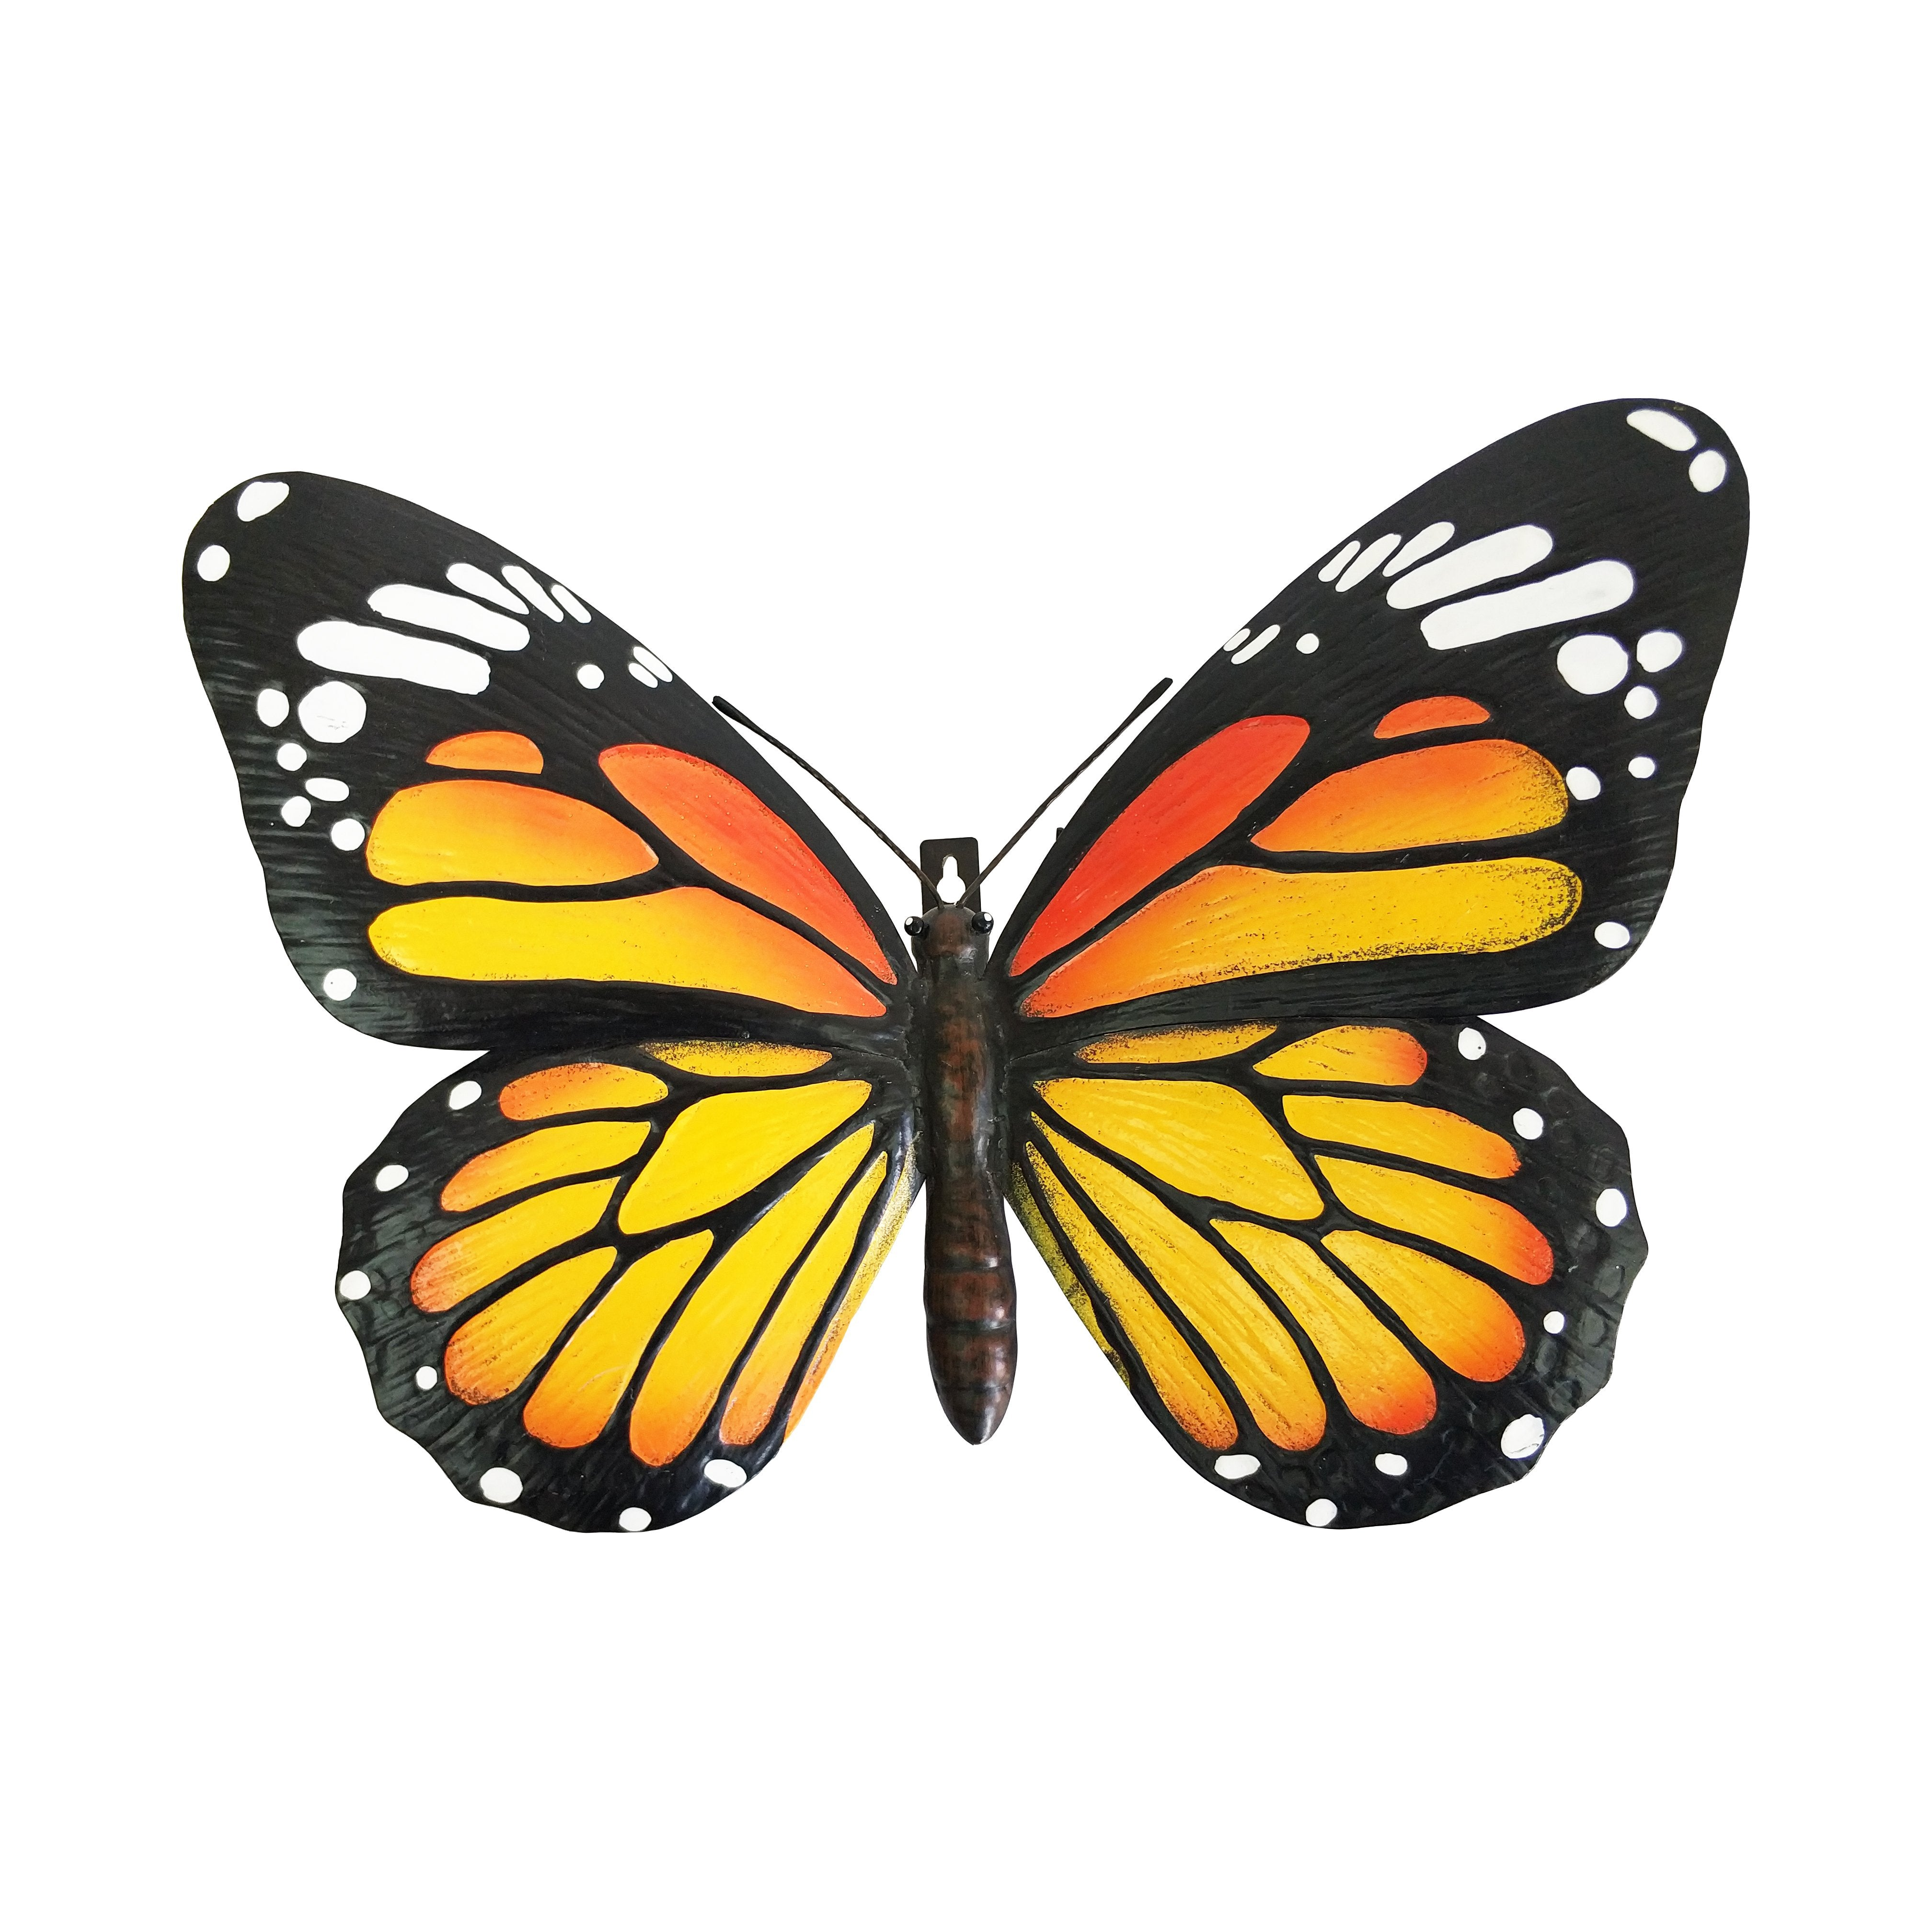 Giant Metal 3D Orange Butterfly - Home & Garden at Country Smart